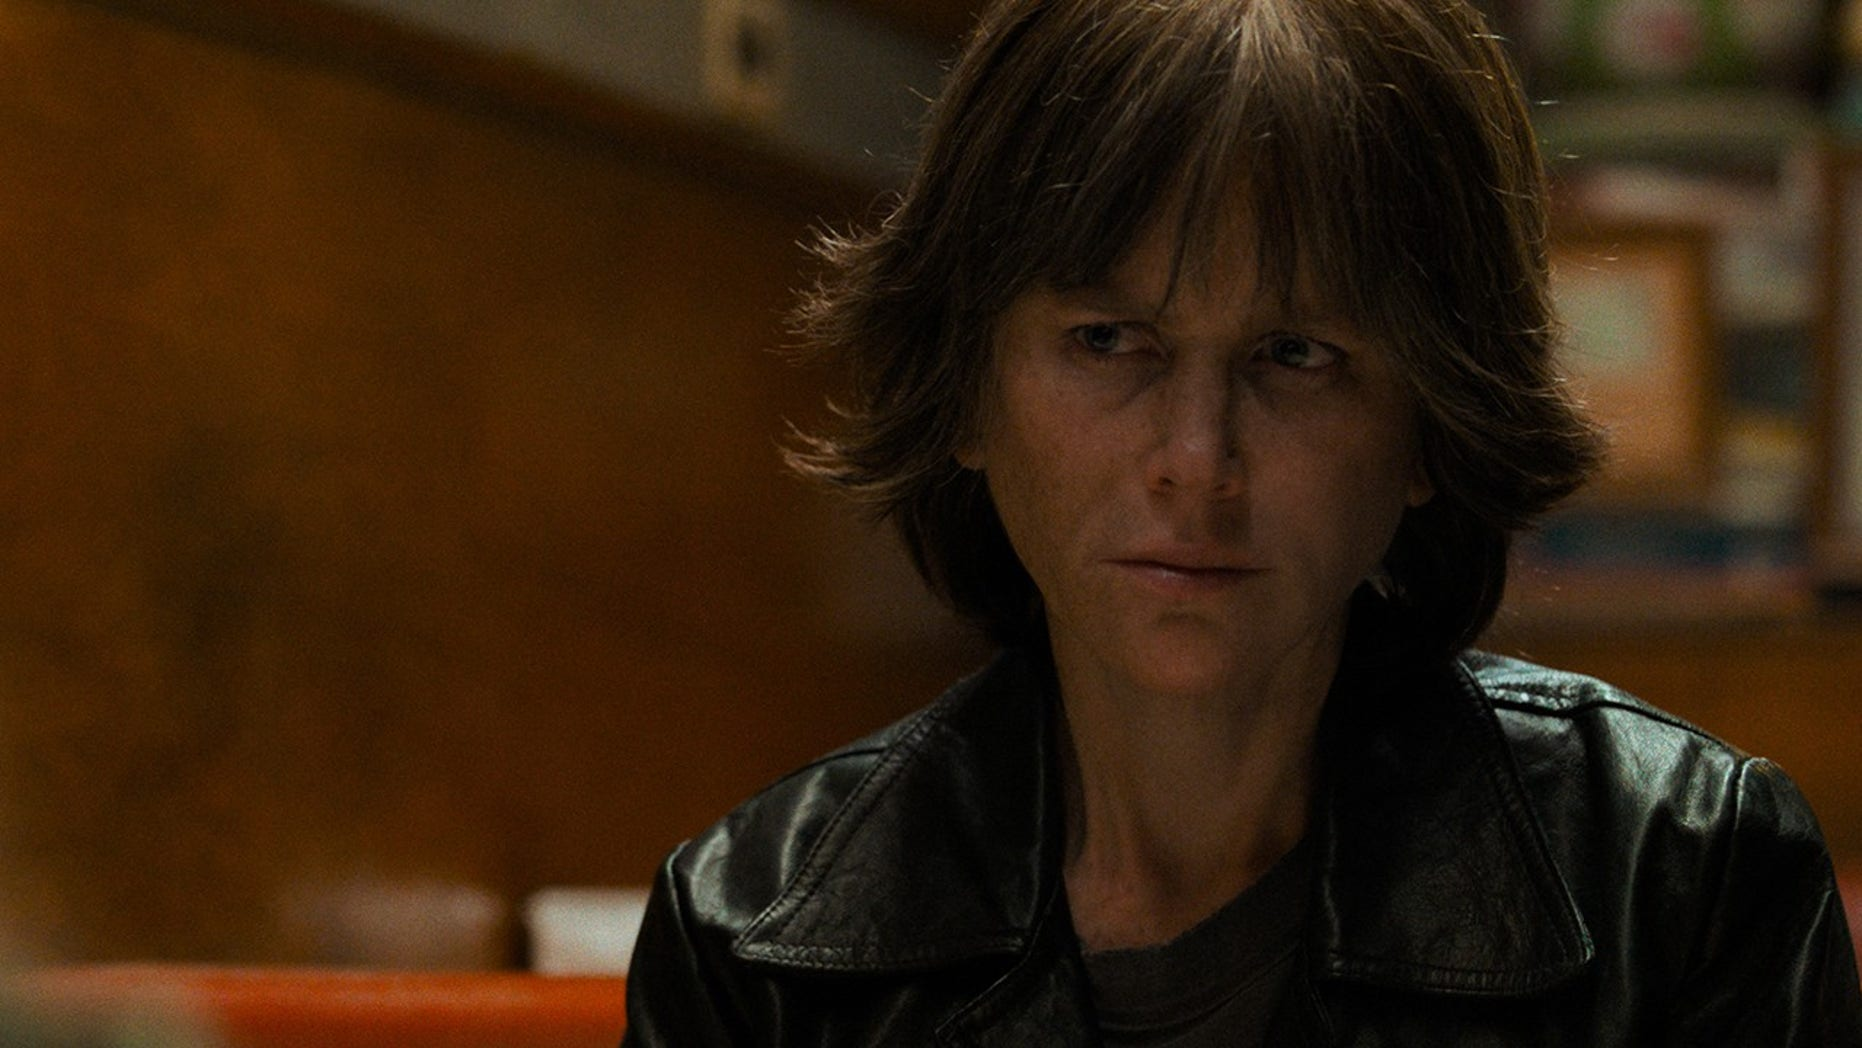 Nicole Kidman Confronts Her Past In The Destroyer Trailer